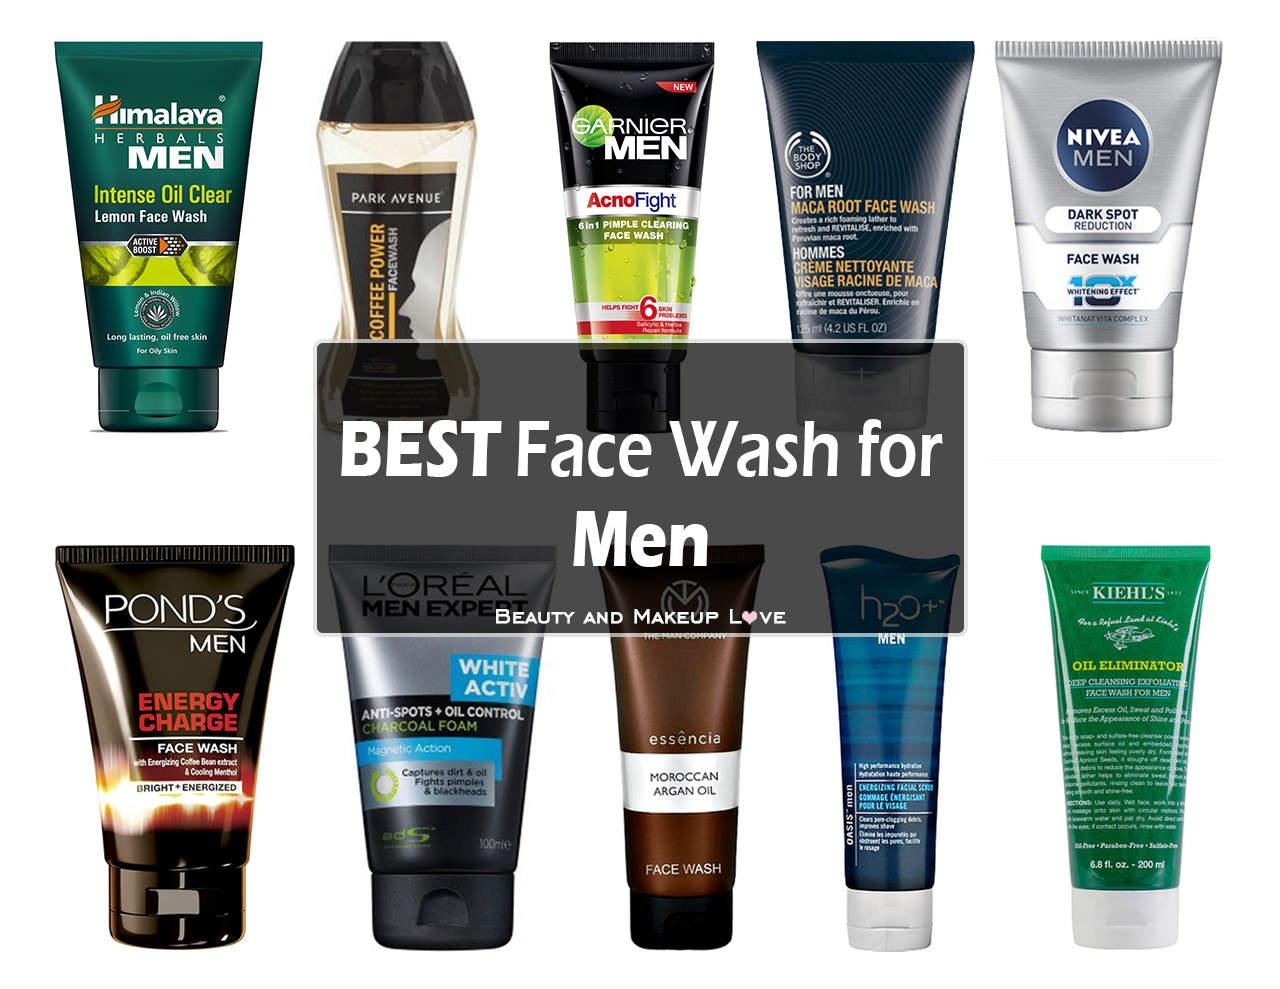 Best Face Wash for Men in India!